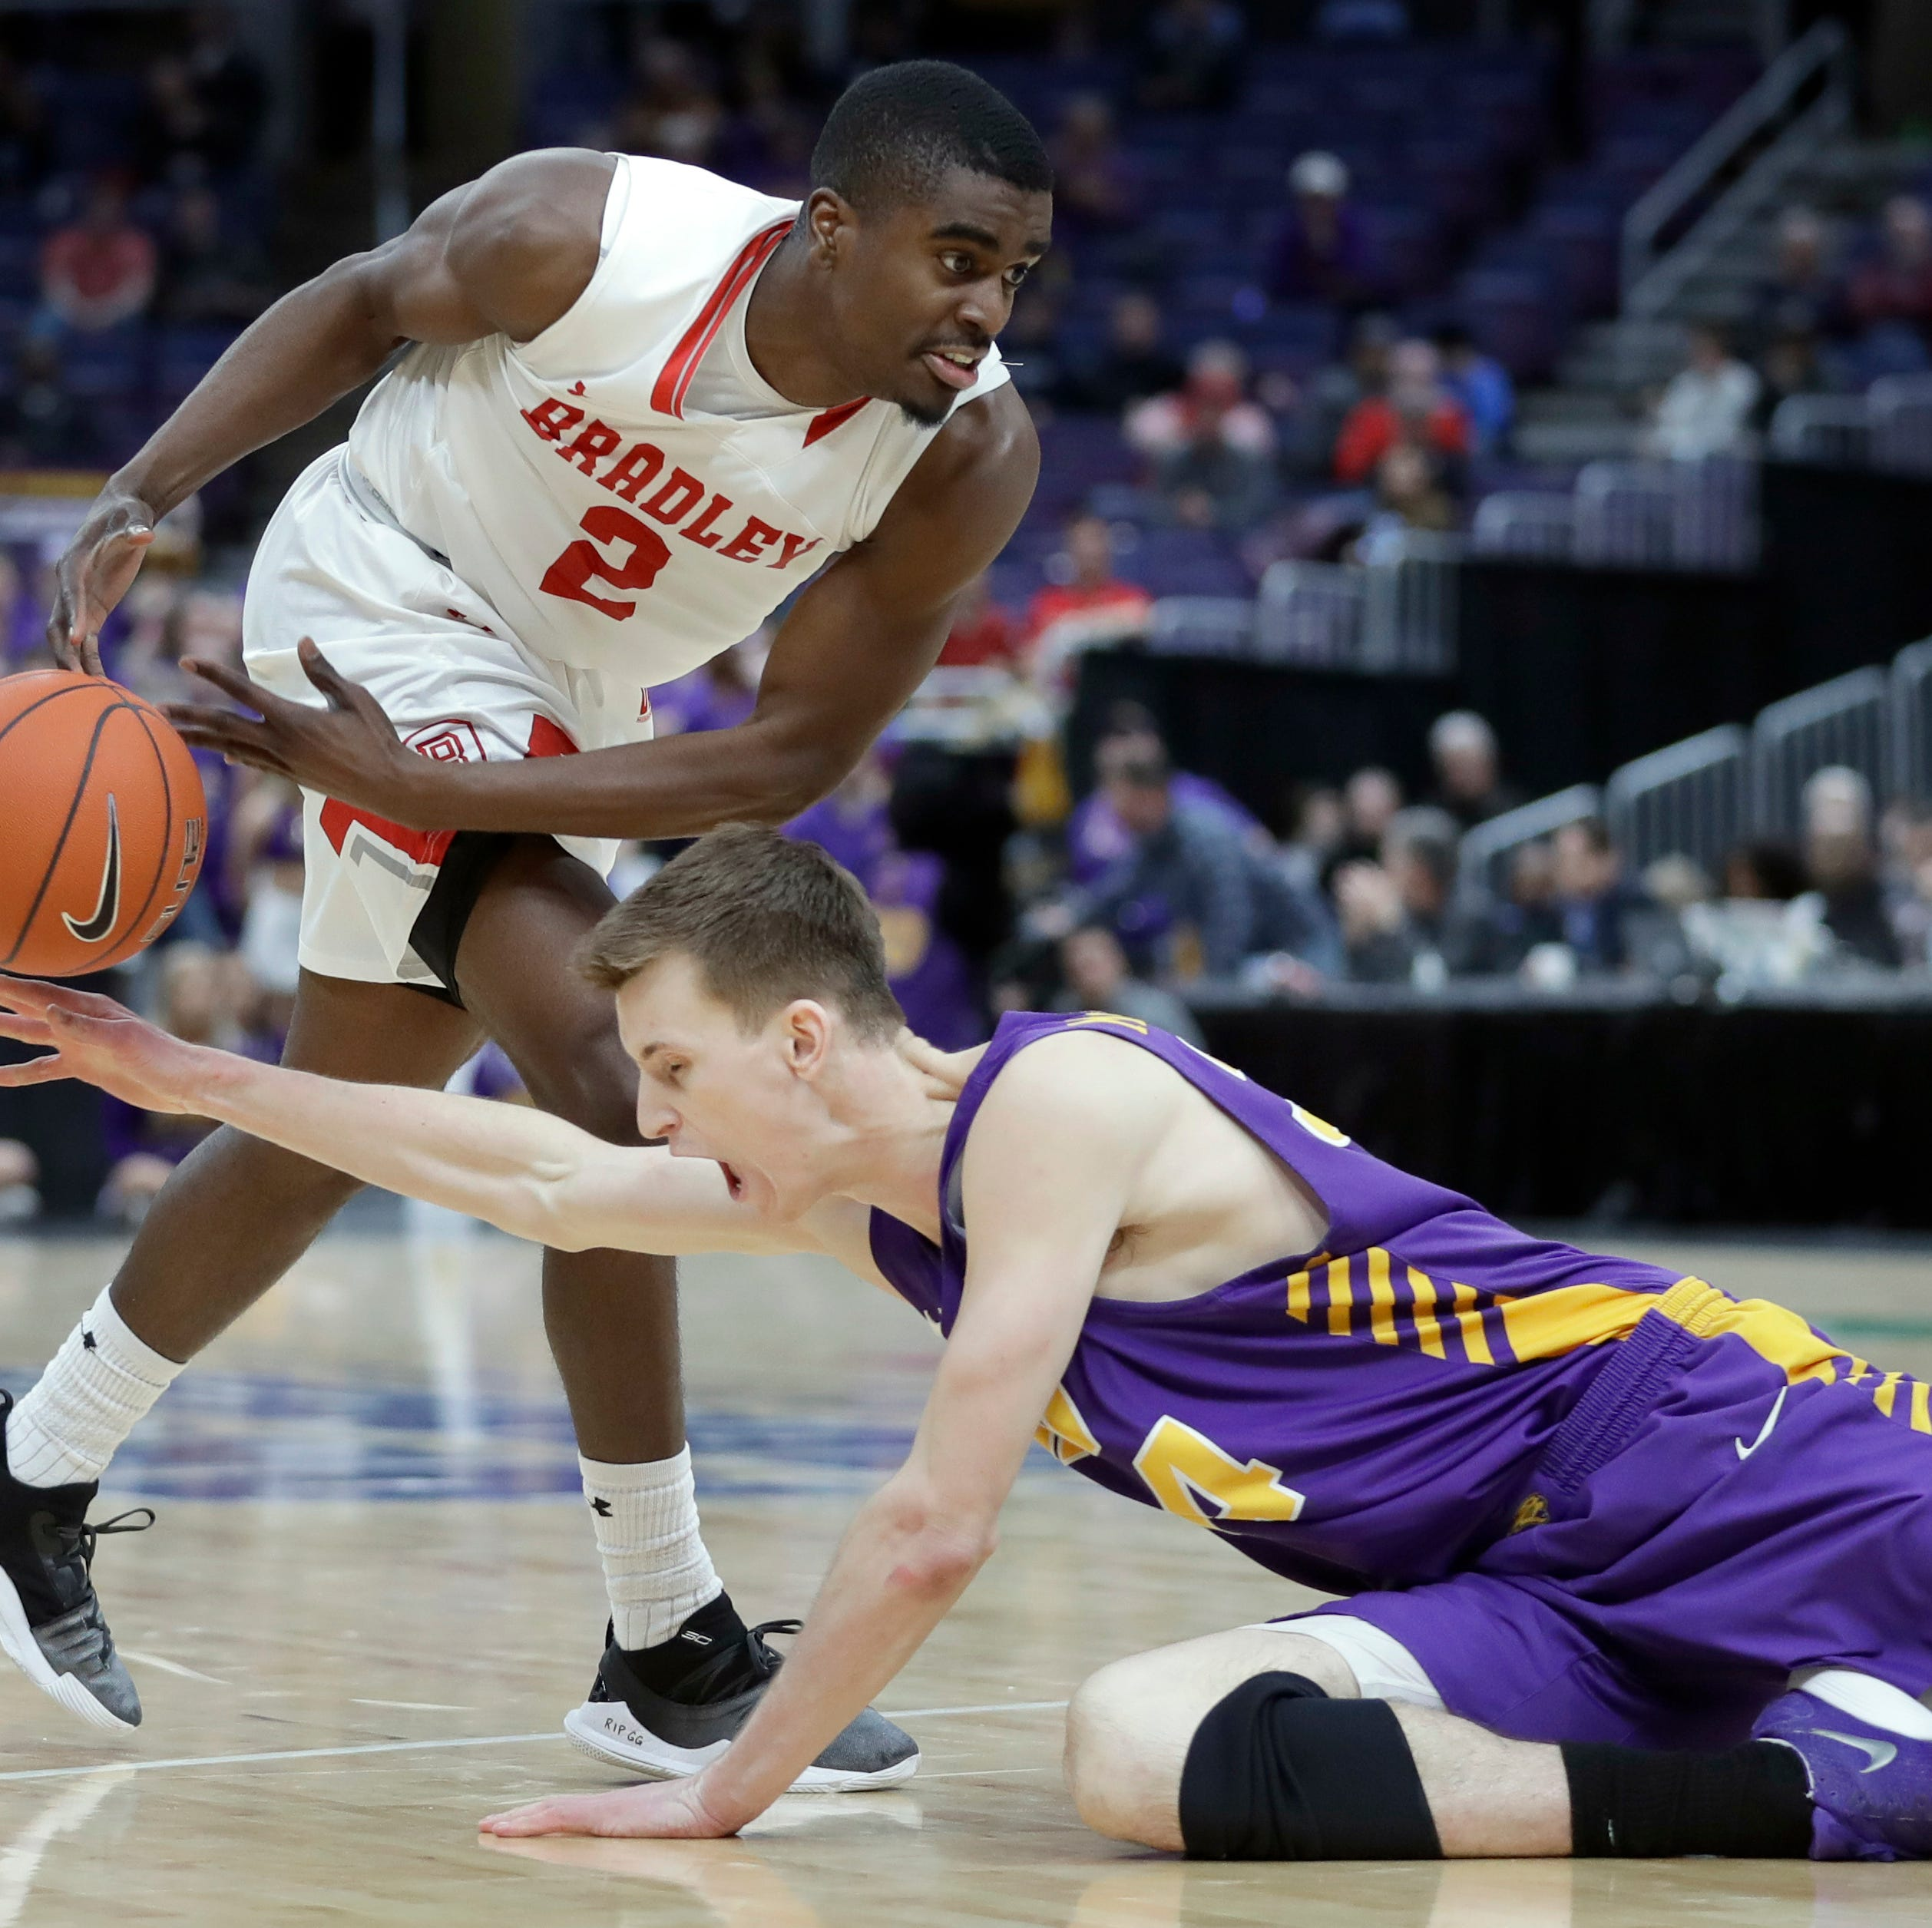 'We didn't leave anything out there': UNI comes up short in Arch Madness title game